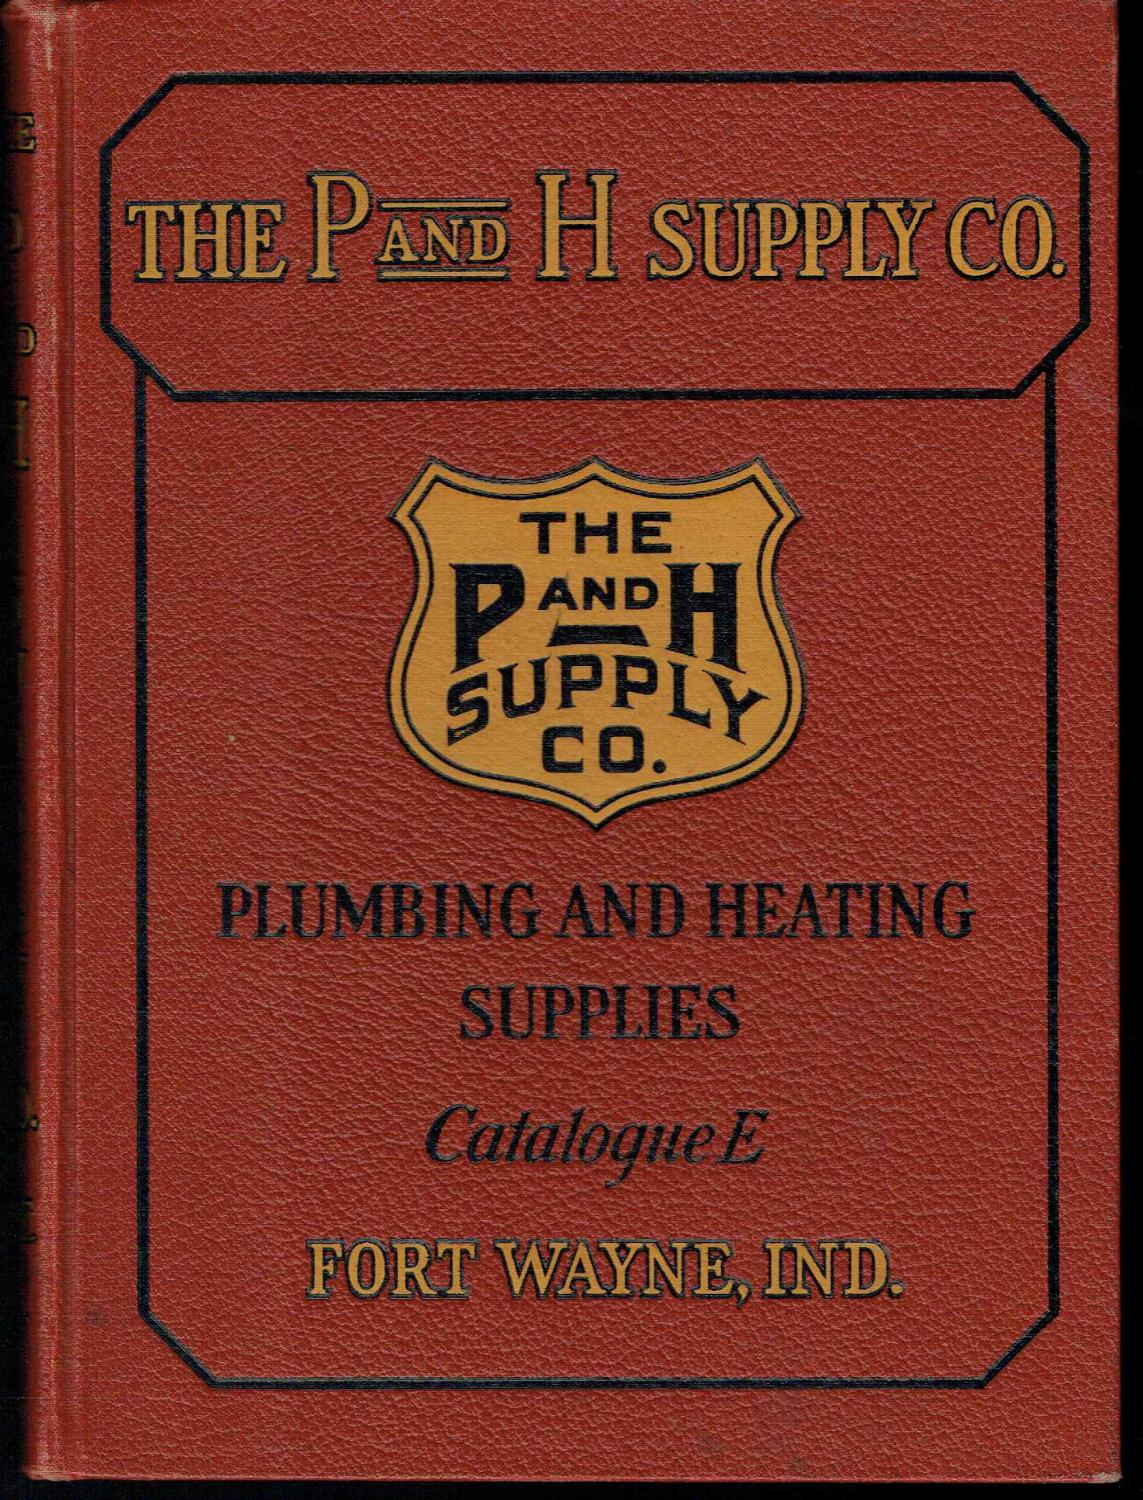 The P and H Supply Co. Catalogue E, Wholesale Distributors, Plumbing, Heating, Steam, Gas and Water Works Supplies Very Good Hardcover Burgundy cloth binding rubbed at spine ends, corners; leaf edges, endpaper a bit smudged, else a very crisp, tight & clean catalog. No dj. ; Many good